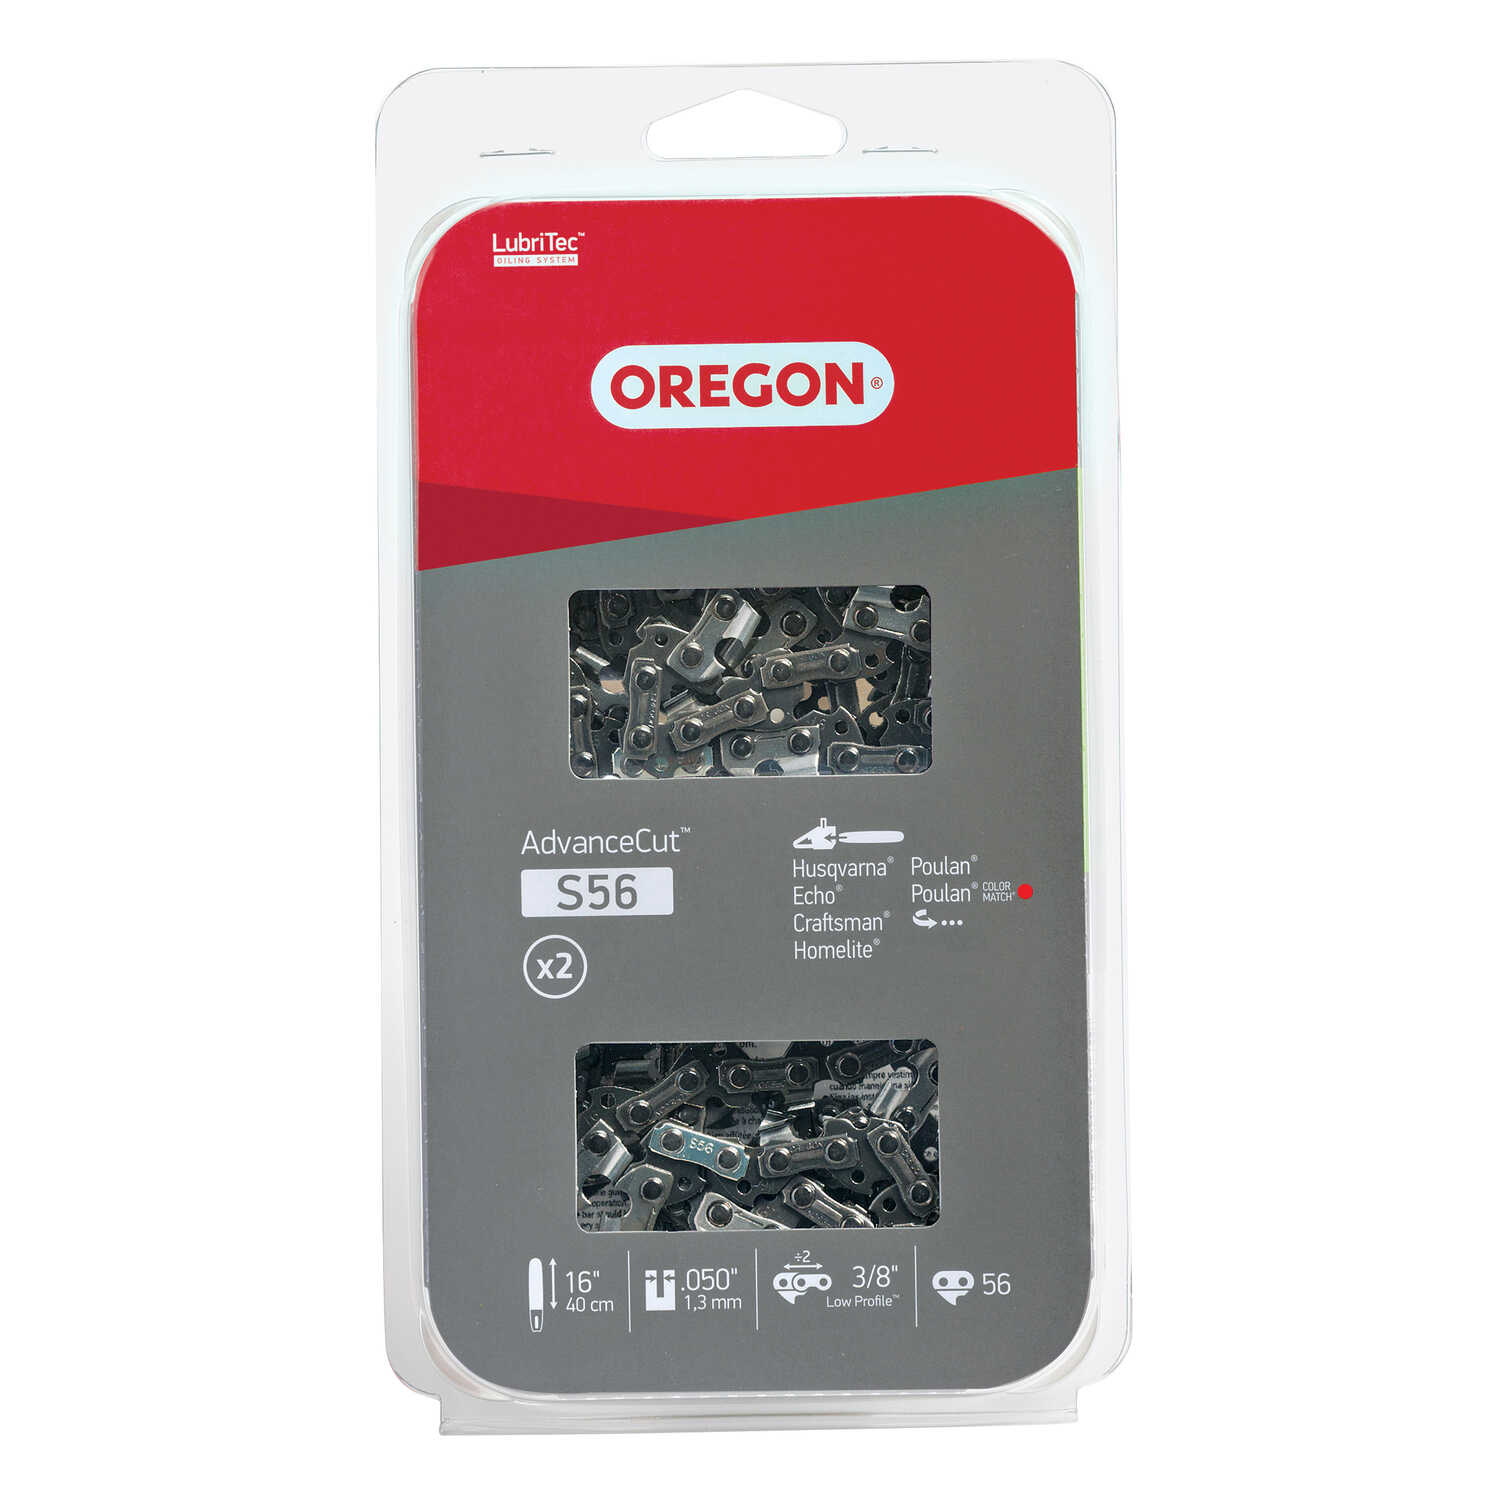 Oregon  Advance Cut  16 in. 56 links Chainsaw Chain